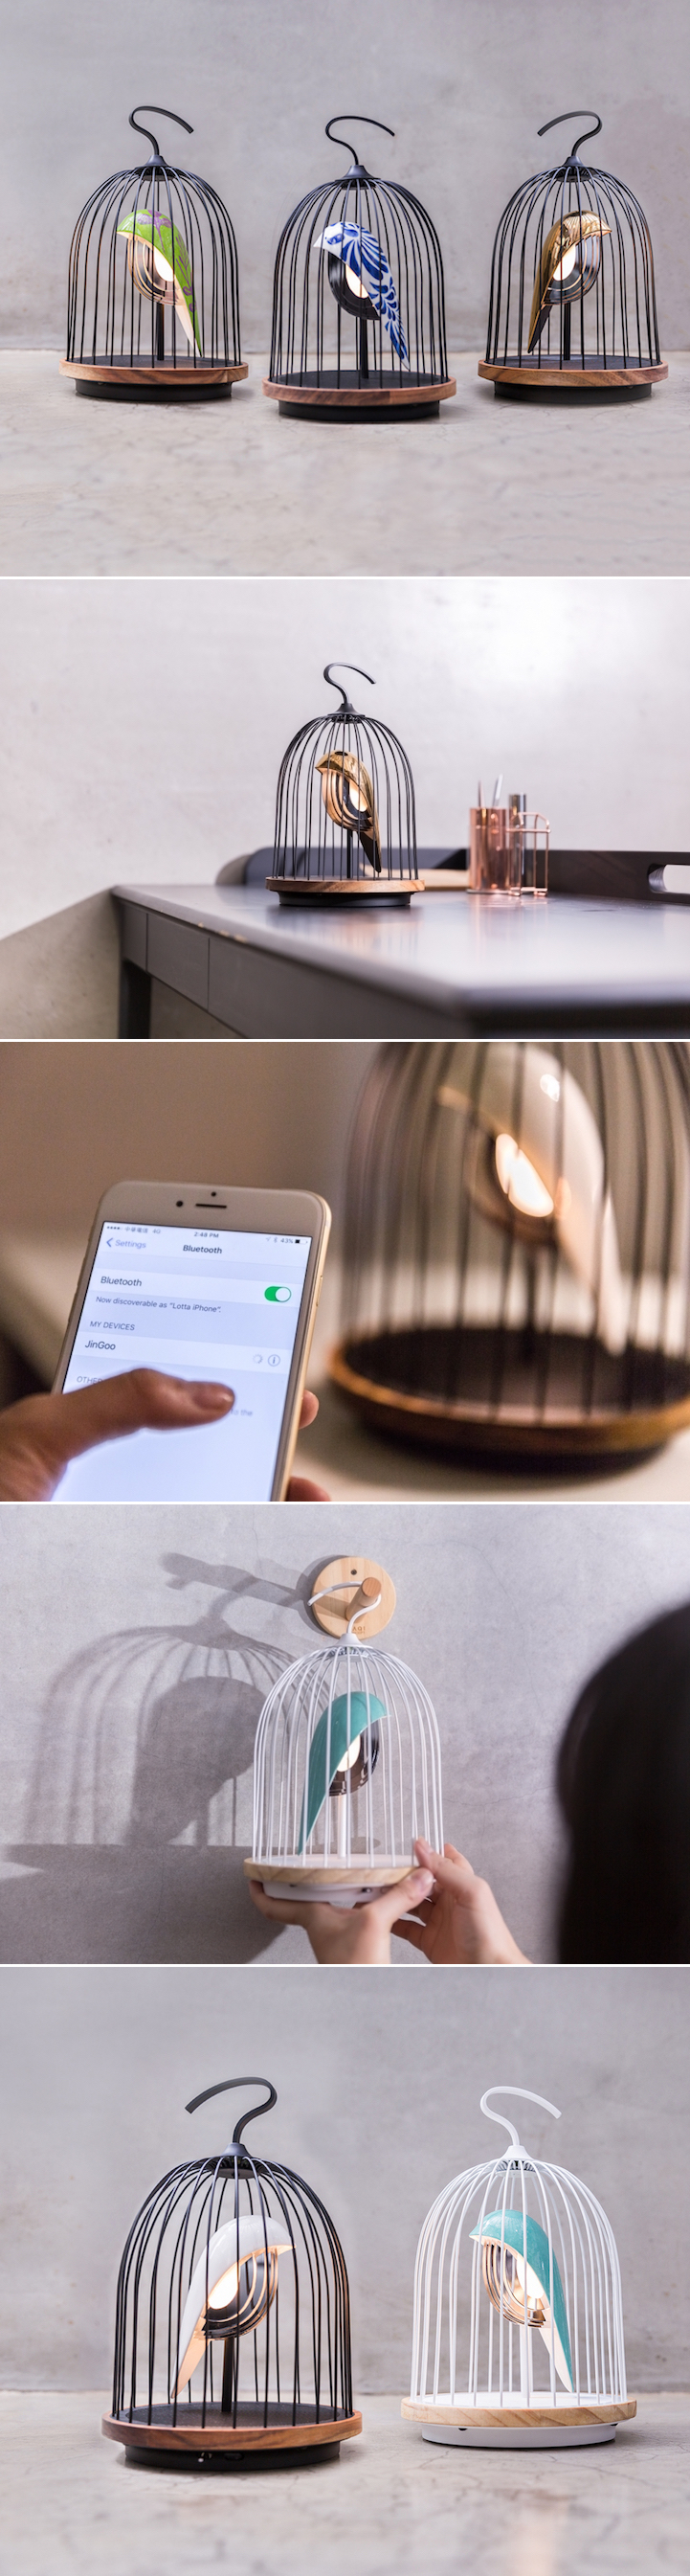 JinGoo is an elegant new speaker and light device that conceals its technical features by cleverly taking the form of a bird in a rounded wire cage.